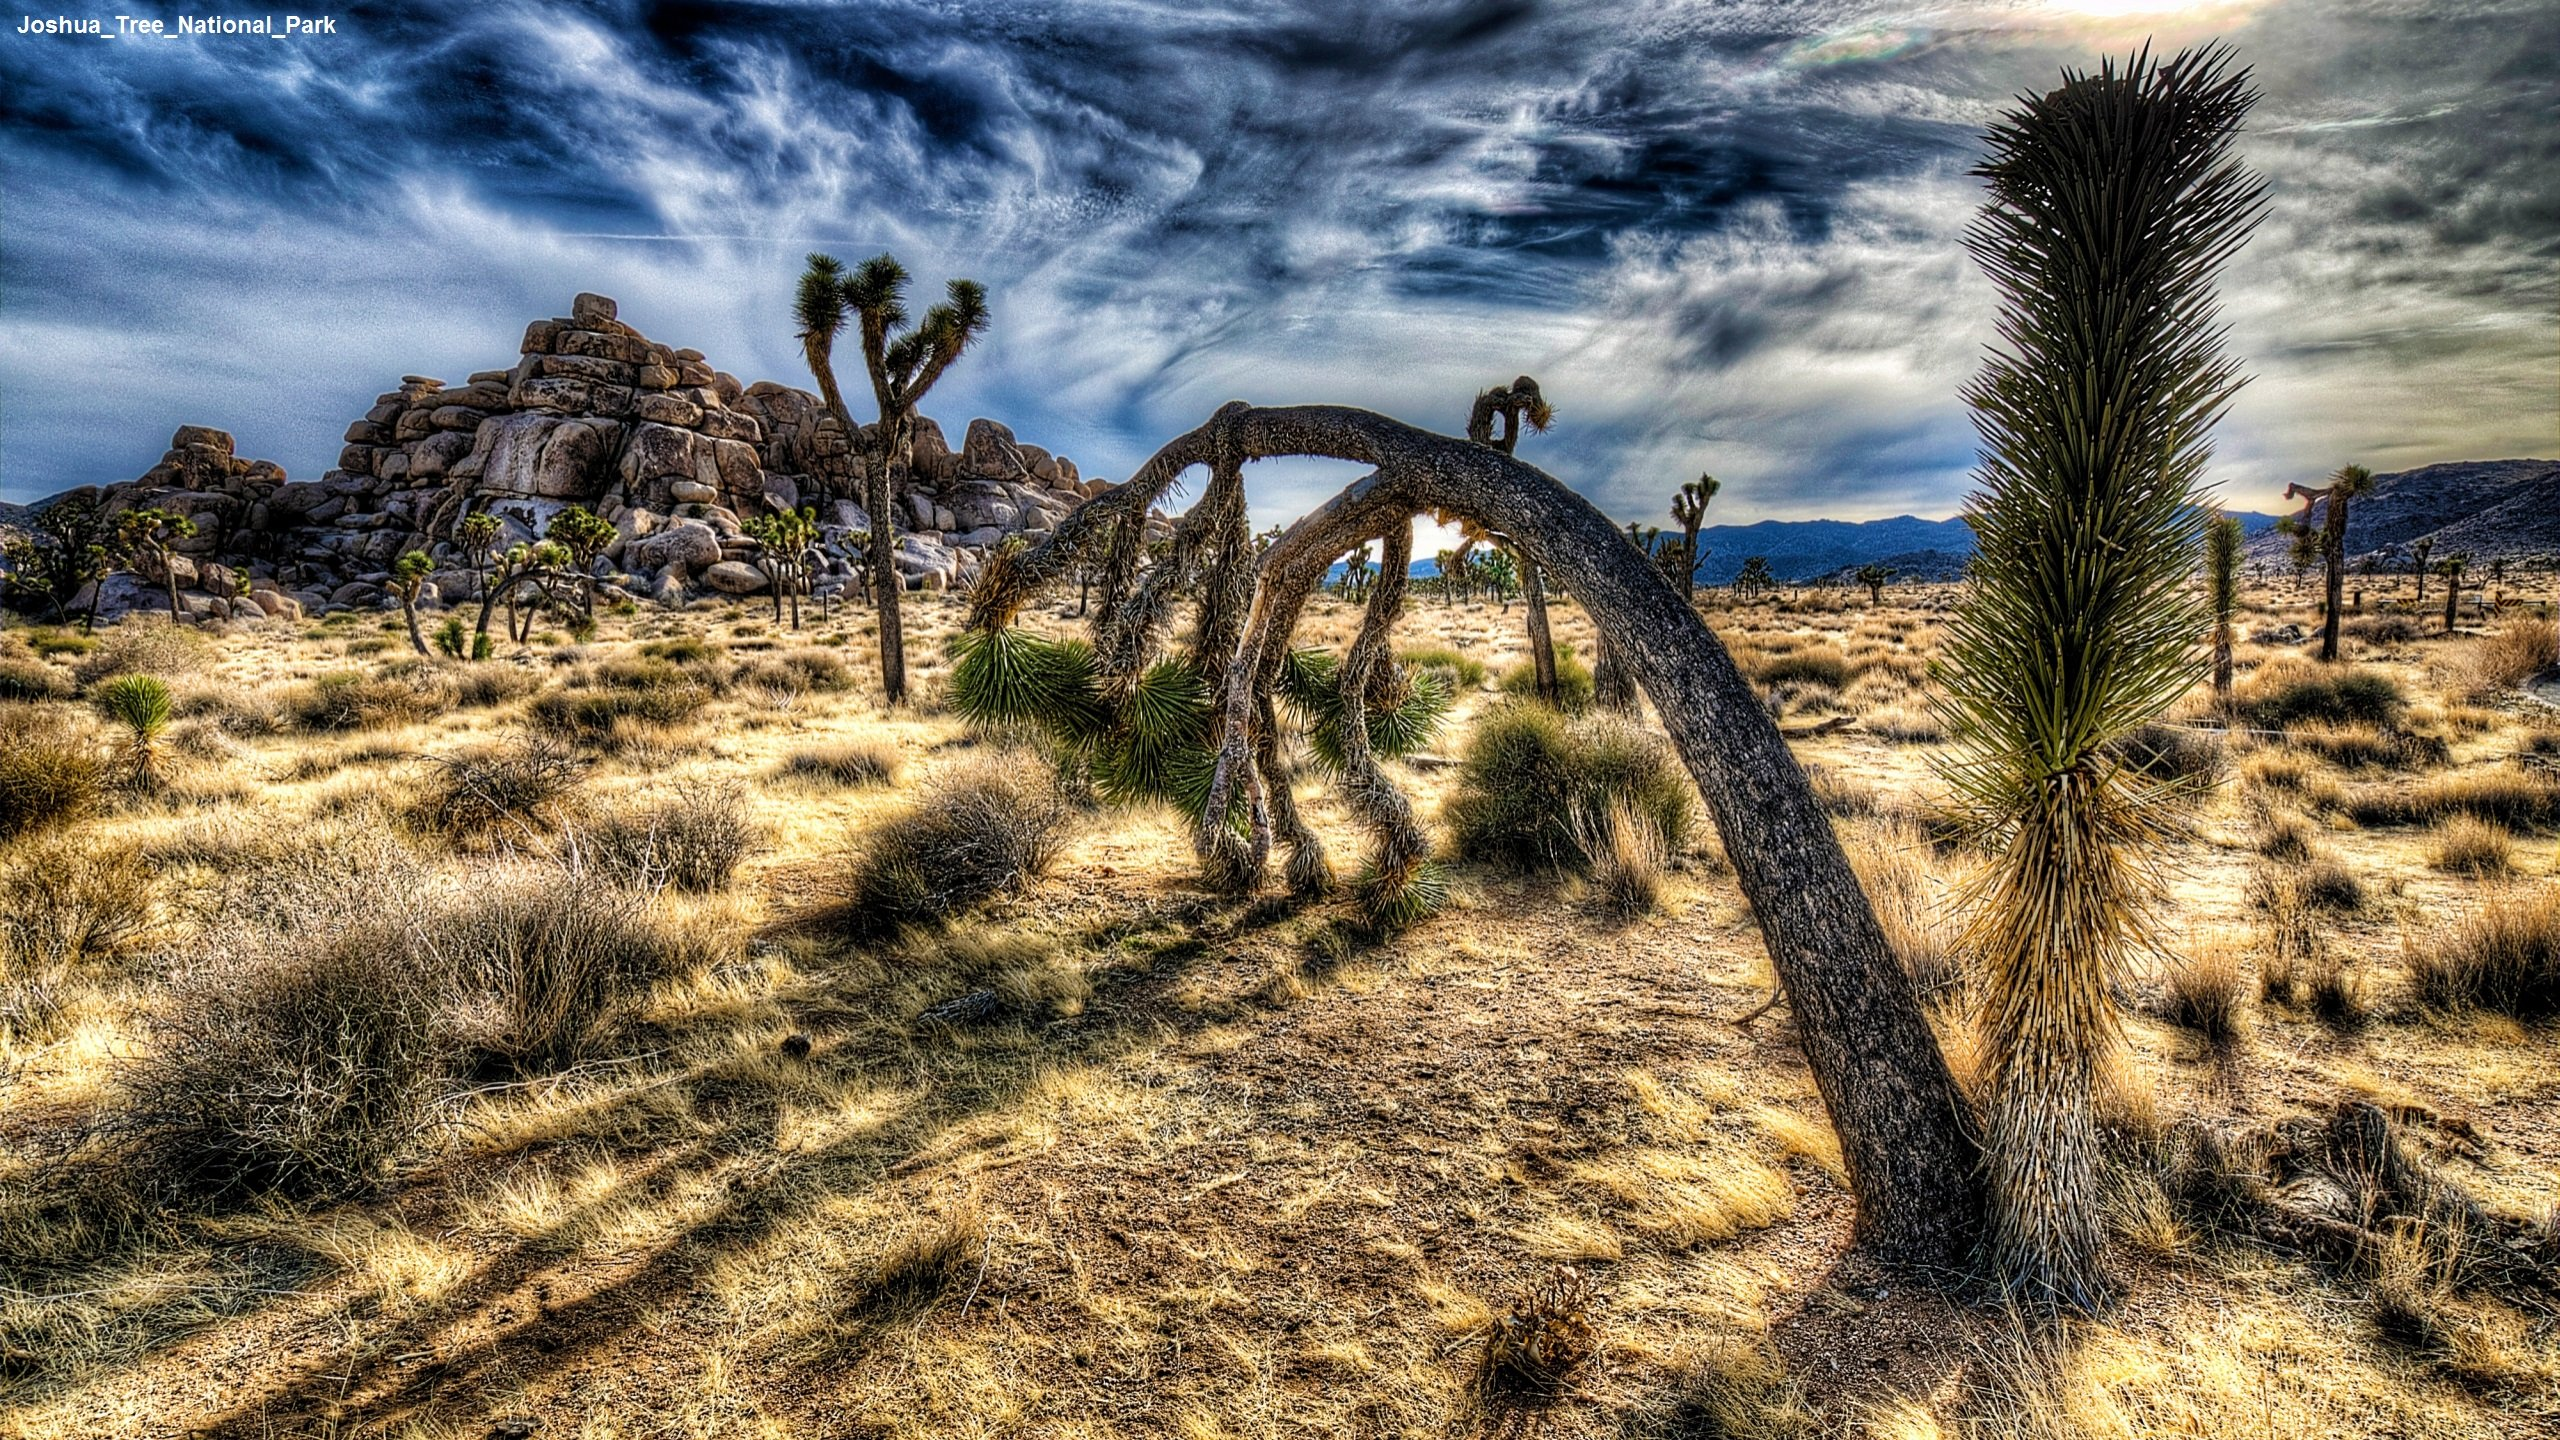 515717-Nature_Joshua_Tree_National_Park